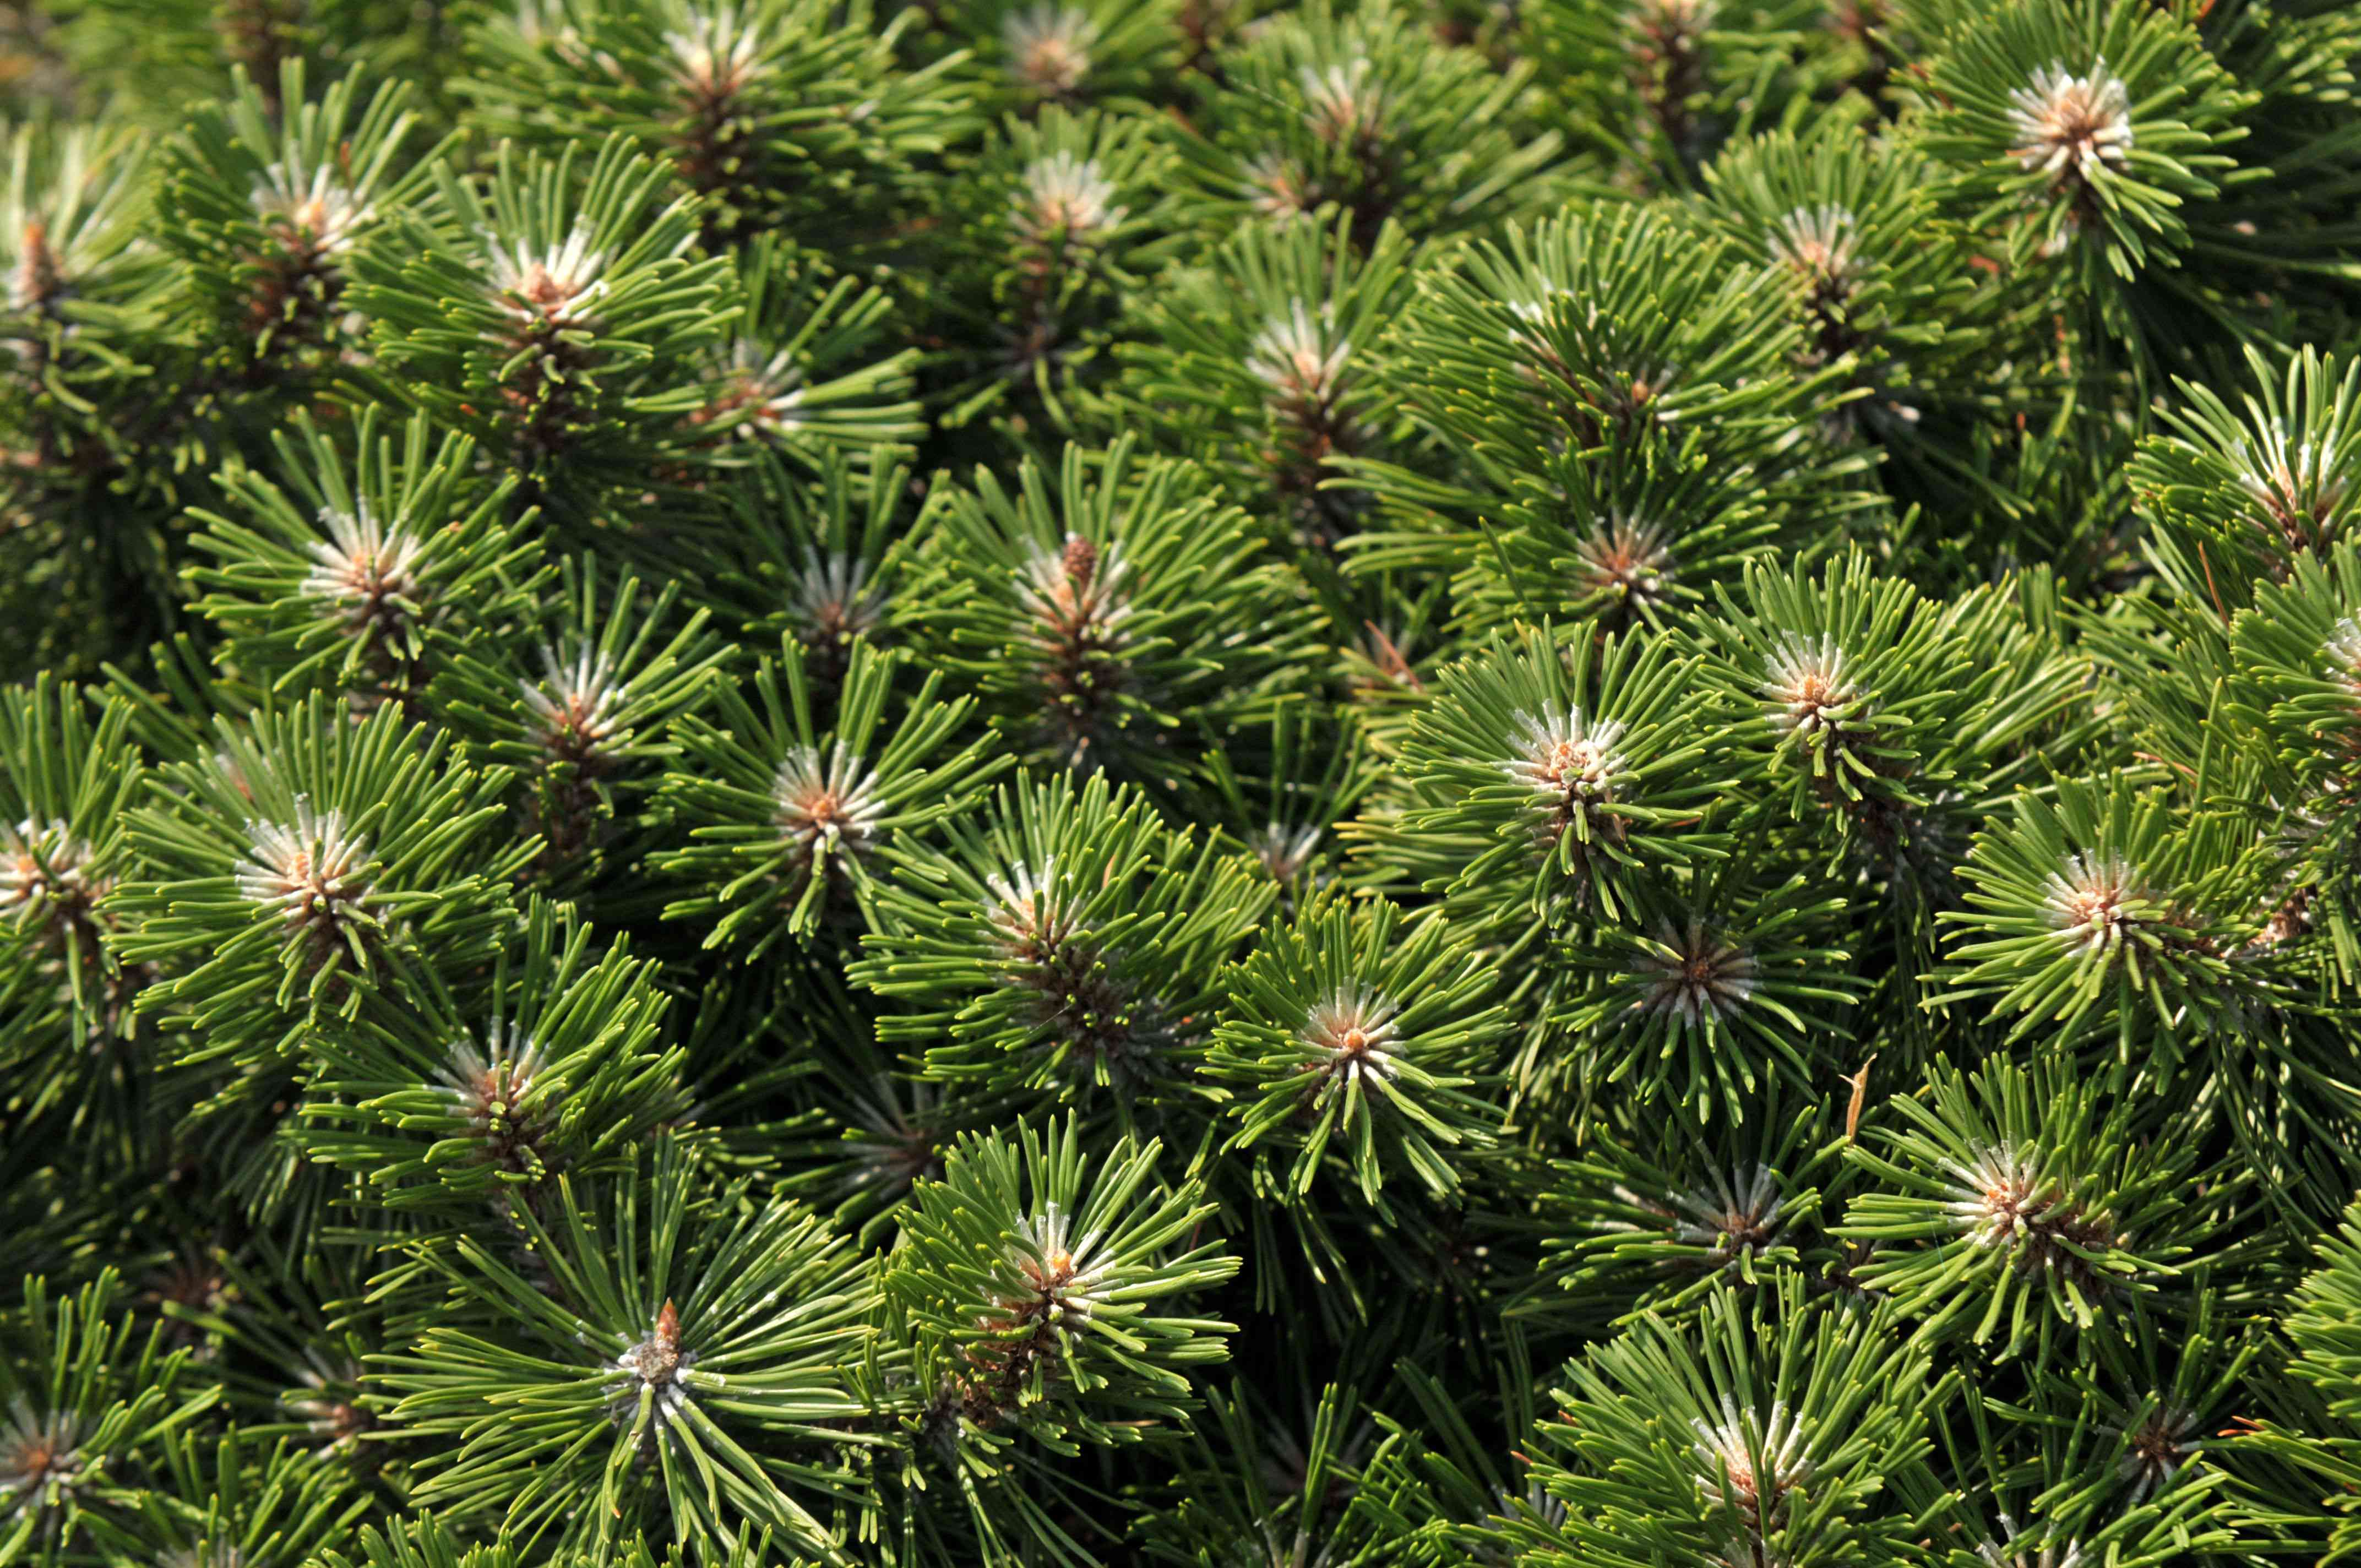 Mugo pine shrub with small needle-like leaves clustered together in sunlight closeup